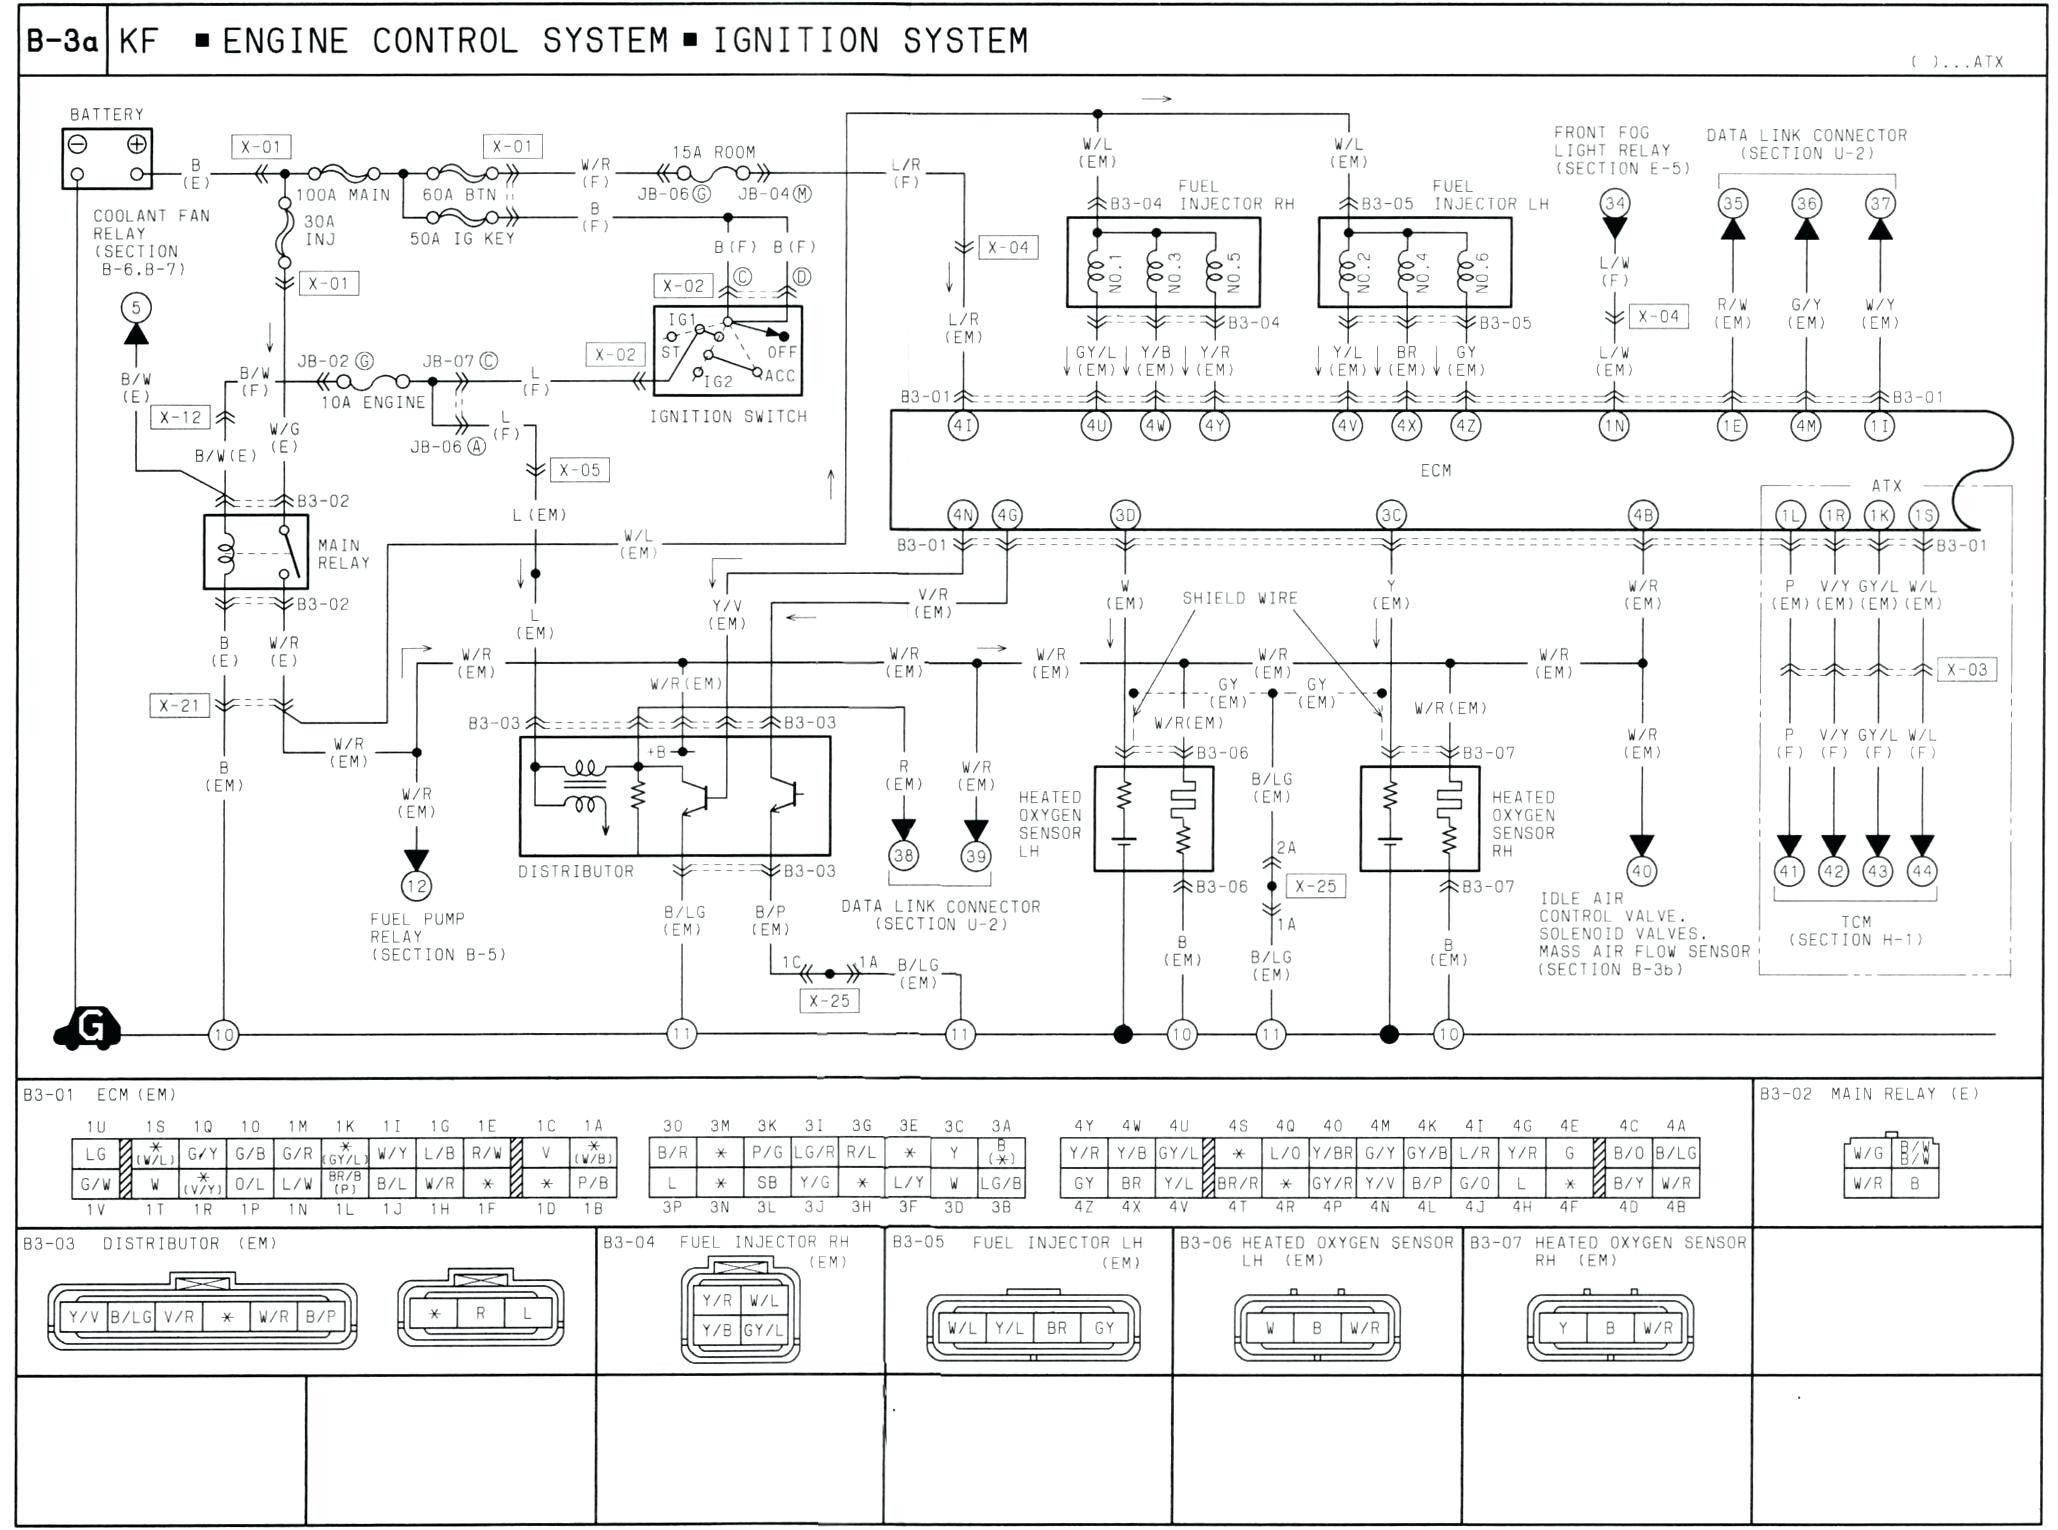 1999 Mazda Miata Engine Diagram Mazda 626 Engine Schematic Find Wiring Diagram • Of 1999 Mazda Miata Engine Diagram